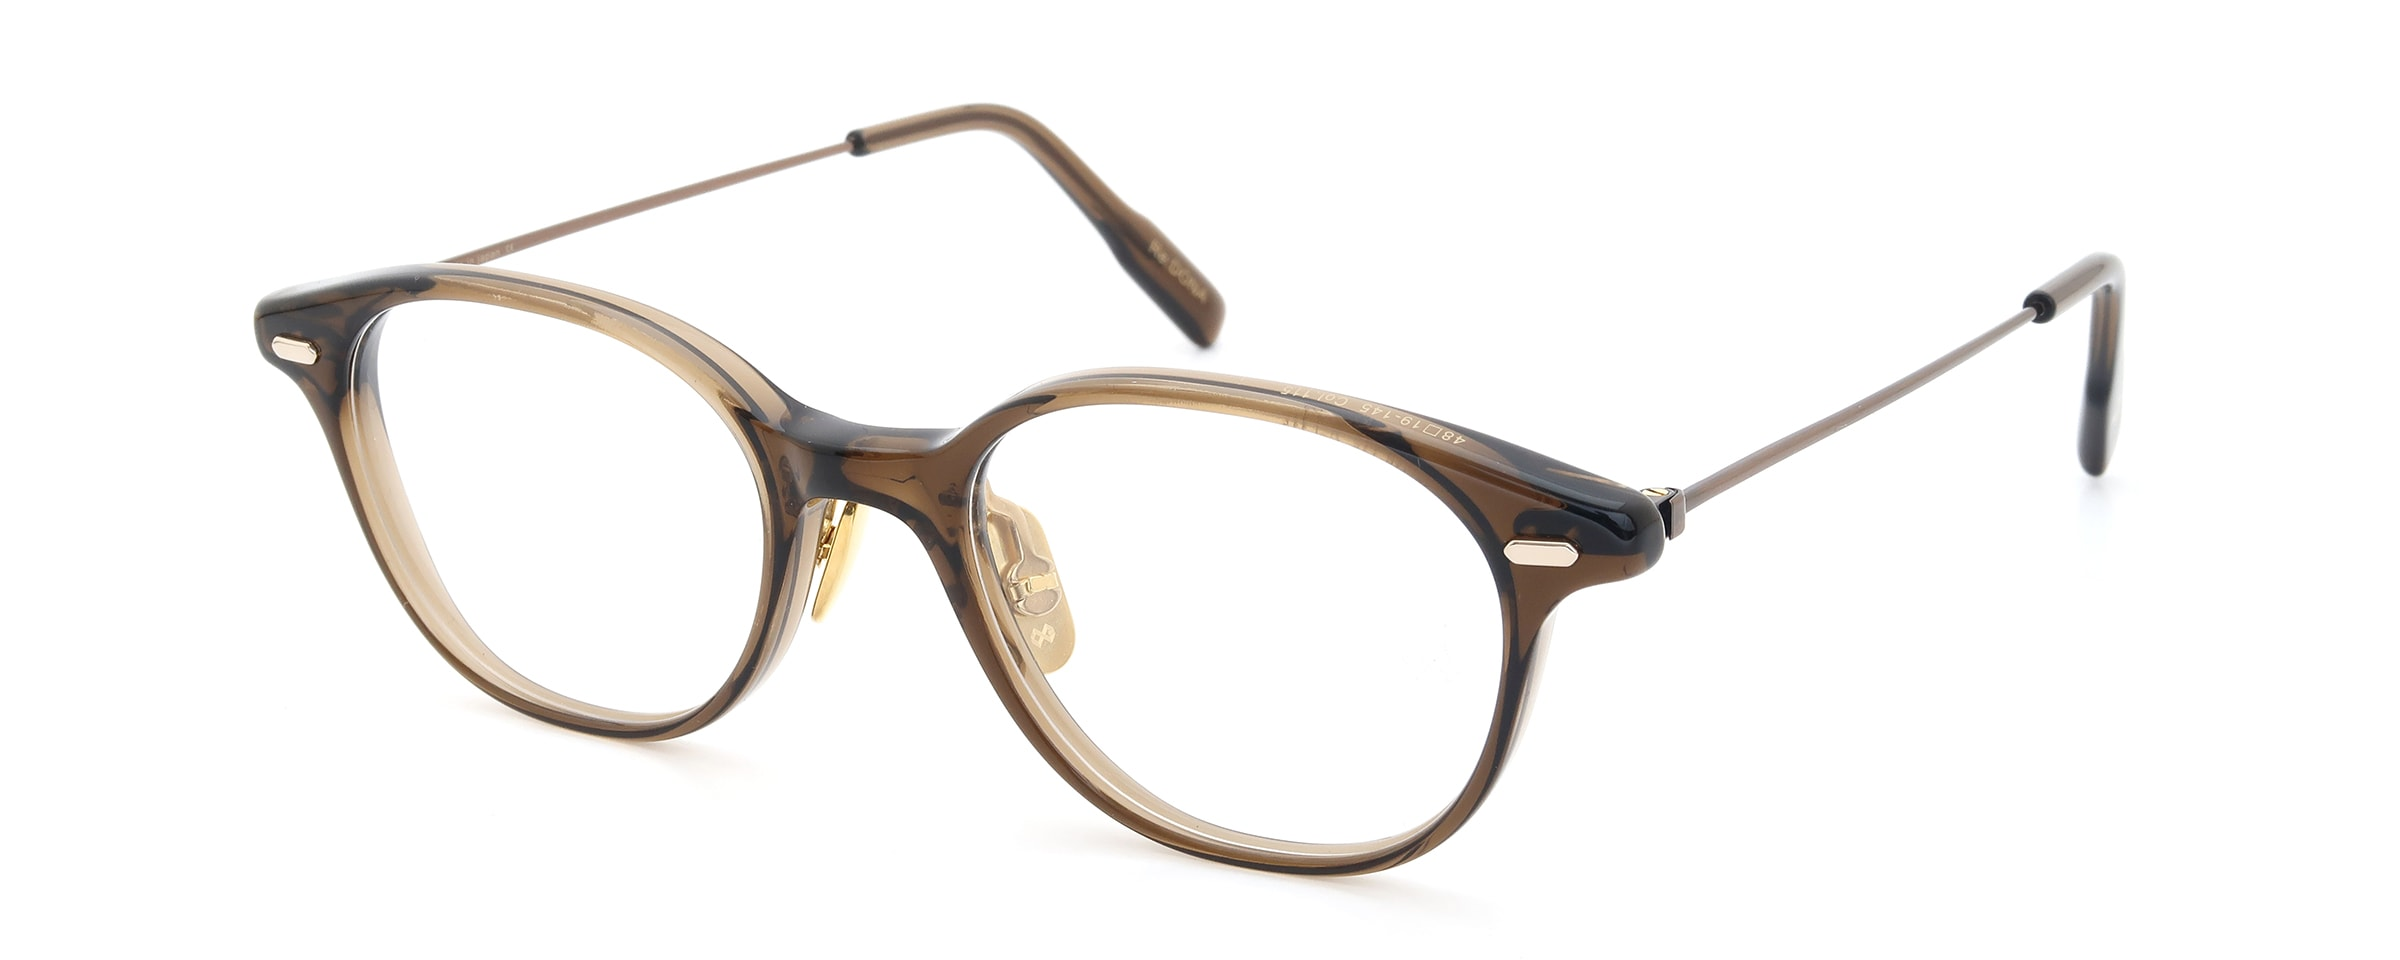 OG × OLIVER GOLDSMITH Re:DONA リ:ドナ